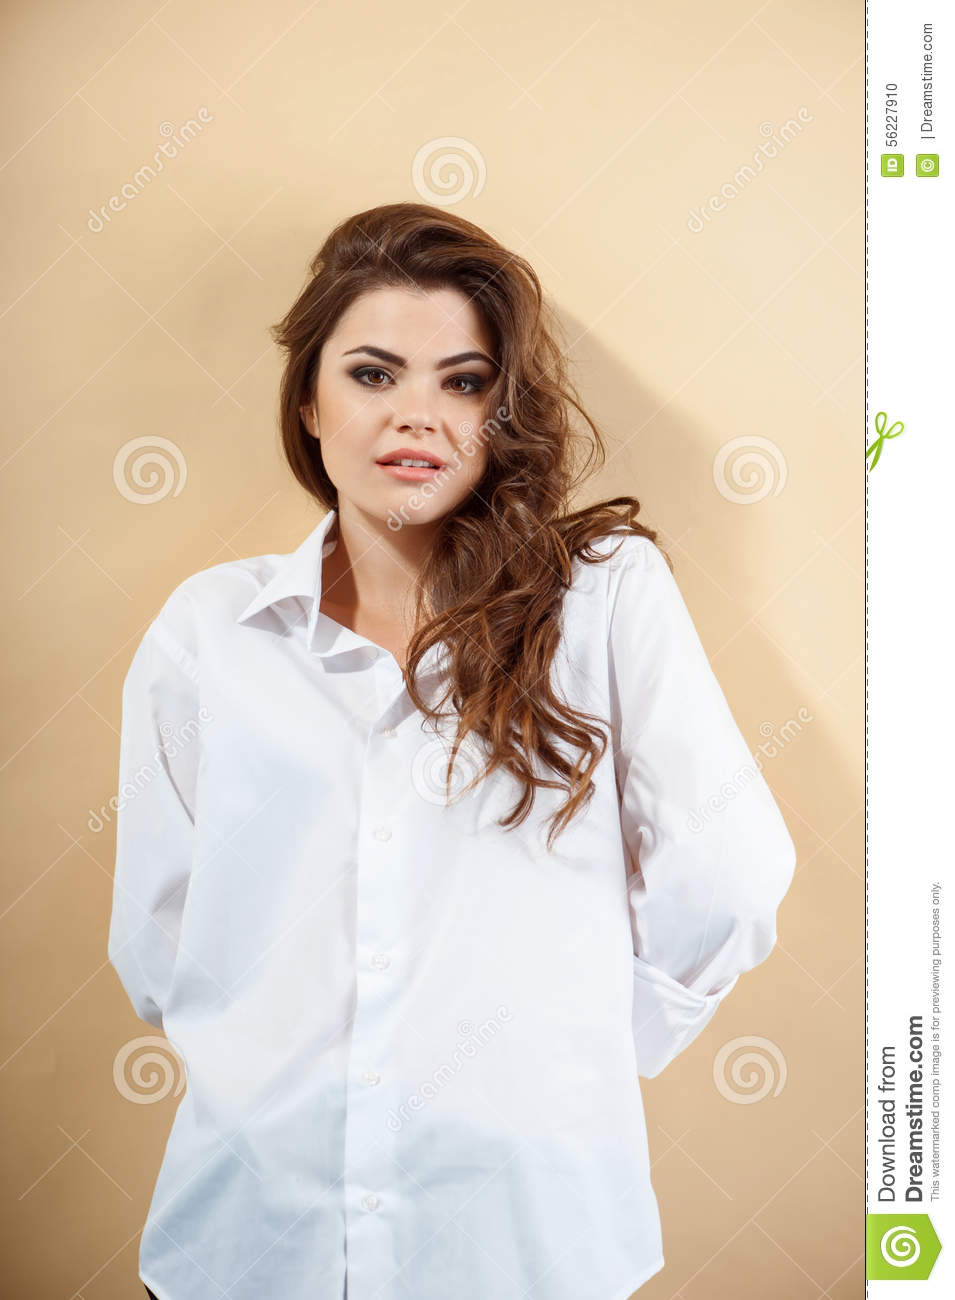 Shy Beautiful Young Girl In White Blouse Stock Photo Image Of